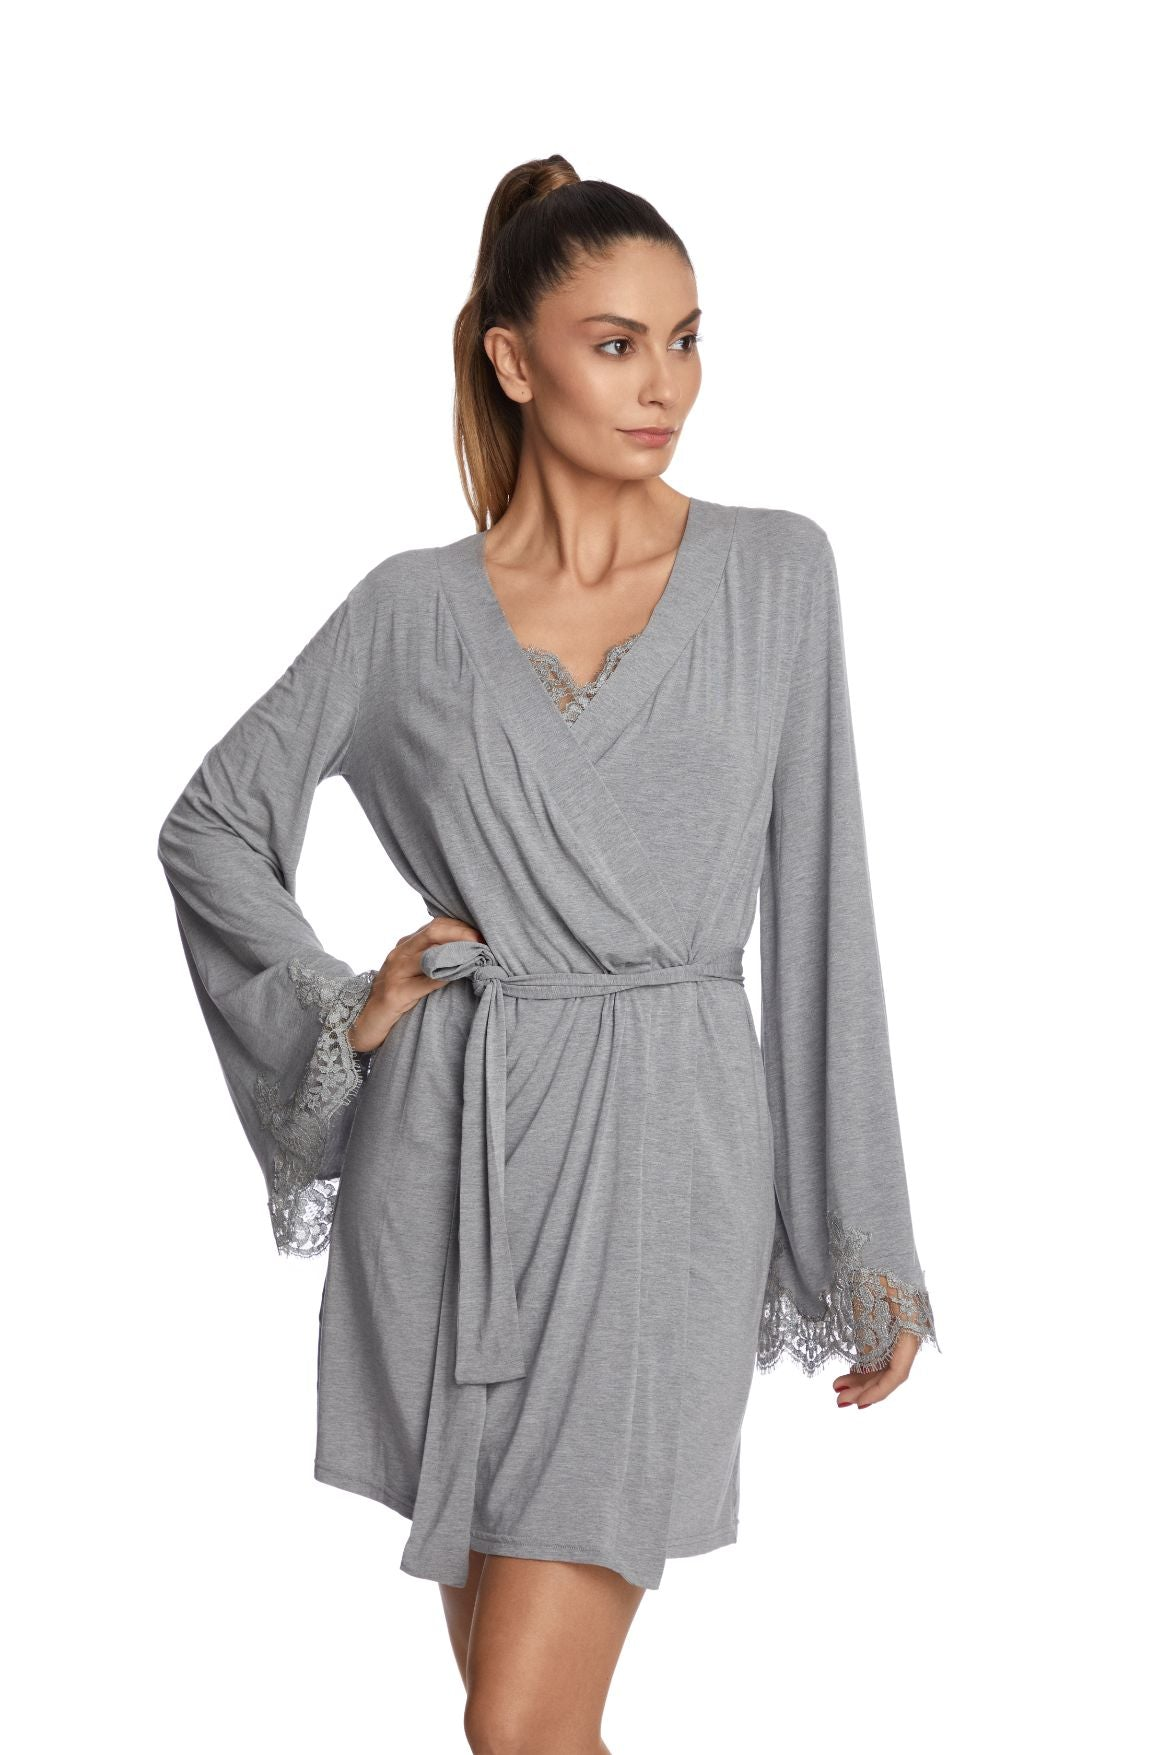 I.D. Sarrieri cotton and lace grey modal short robe